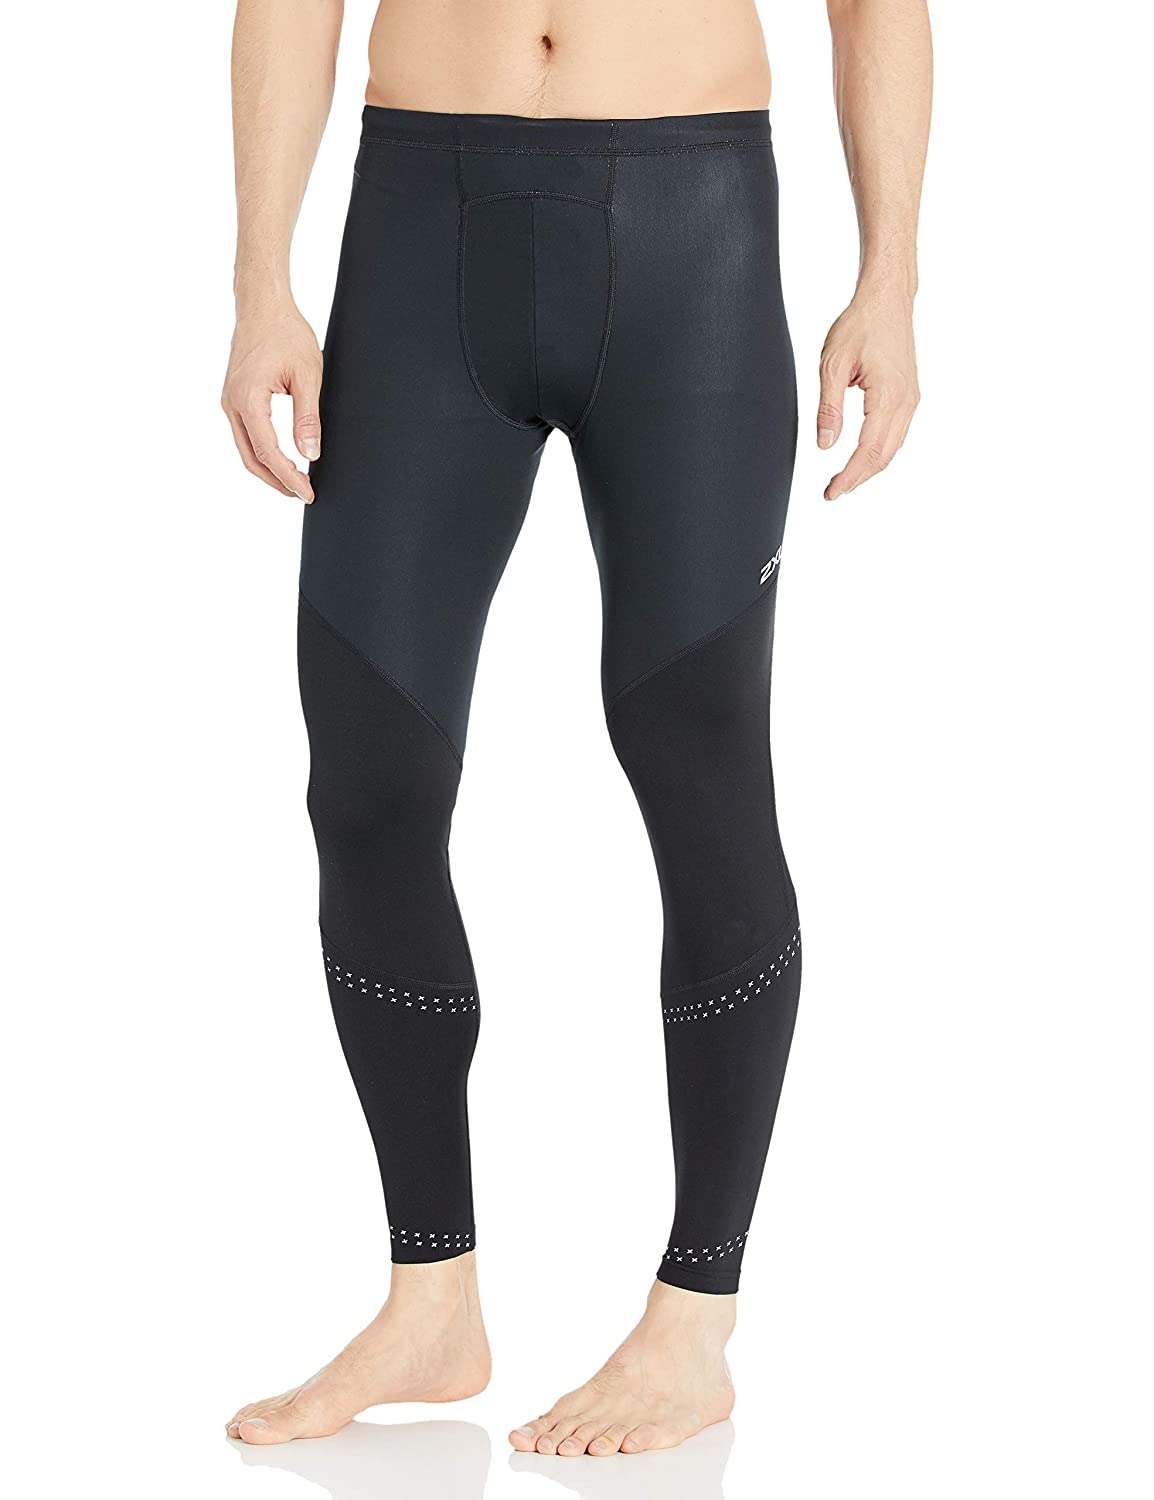 Image of 2XU Wind Defense Compression Tights Compression Pants & Tights